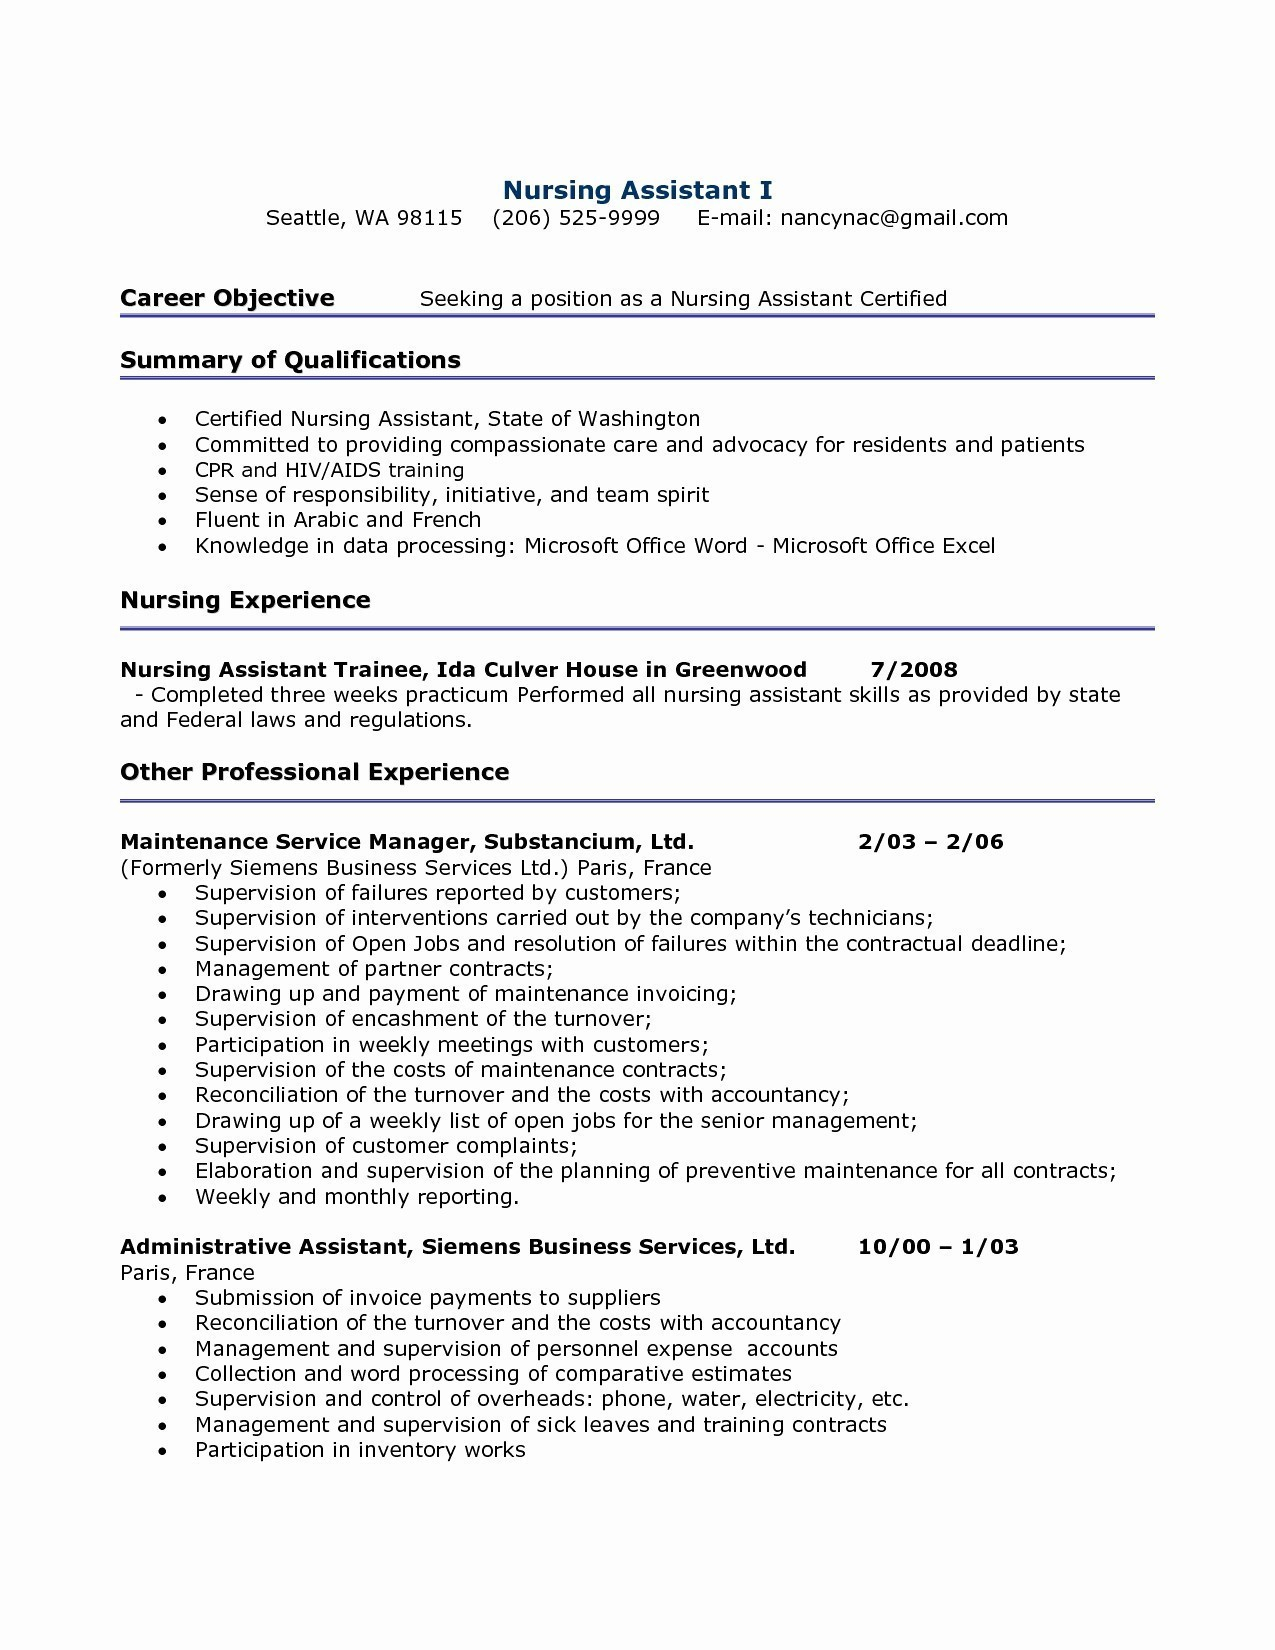 Self Description Words - Descriptive Words for Resume Beautiful Self Descriptive Words for